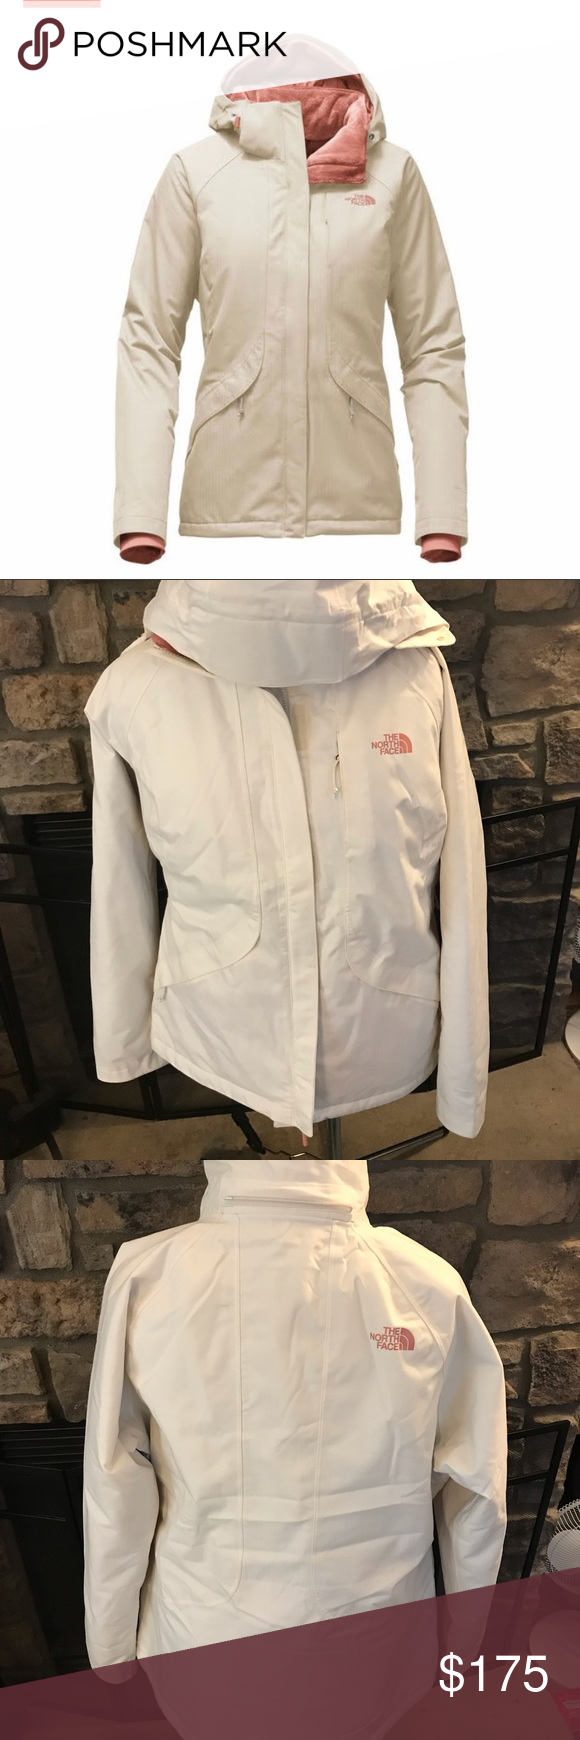 Womens North Face Insulated Inlux Ski Jacket Large North Face Women The North Face Ski Jacket [ 1740 x 580 Pixel ]